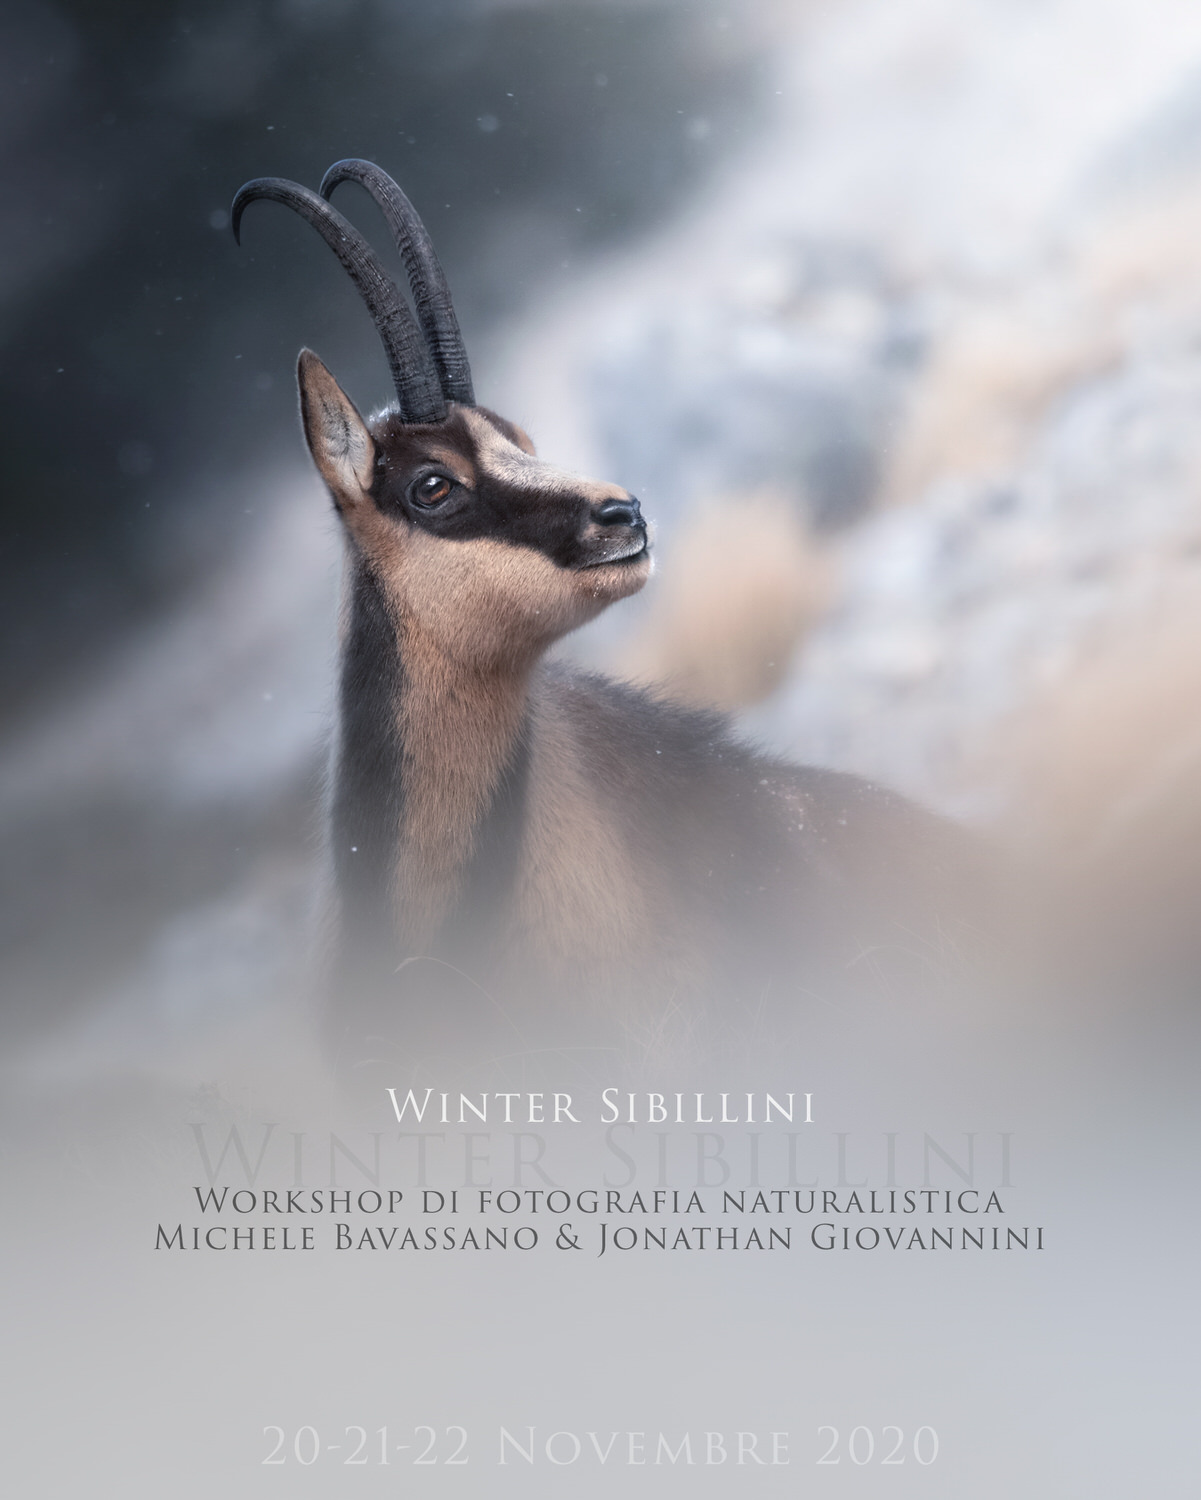 Winter-Sibillini-workshop di fotografia naturalistica